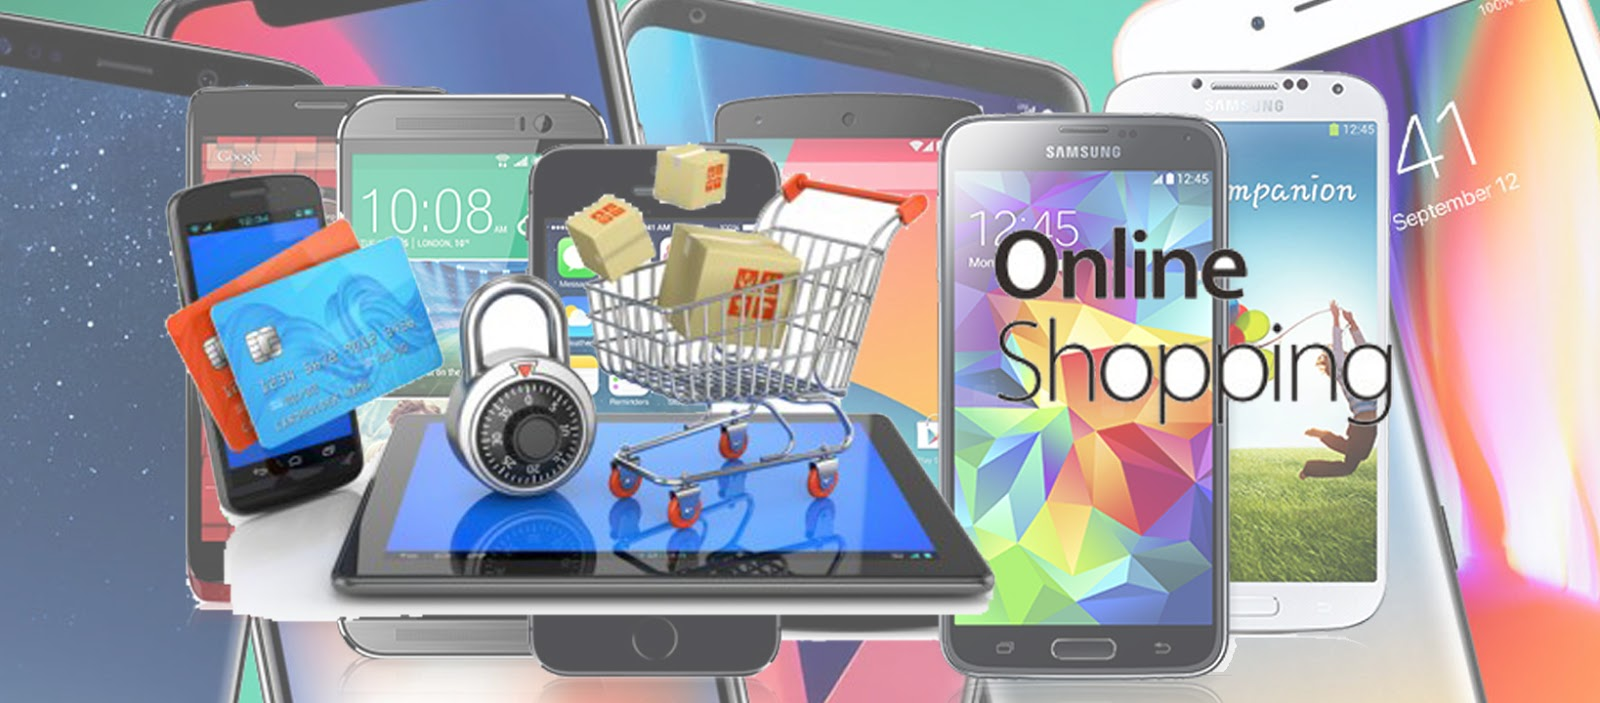 Easy Ways to Finding Mobile Phone Deals Via Online